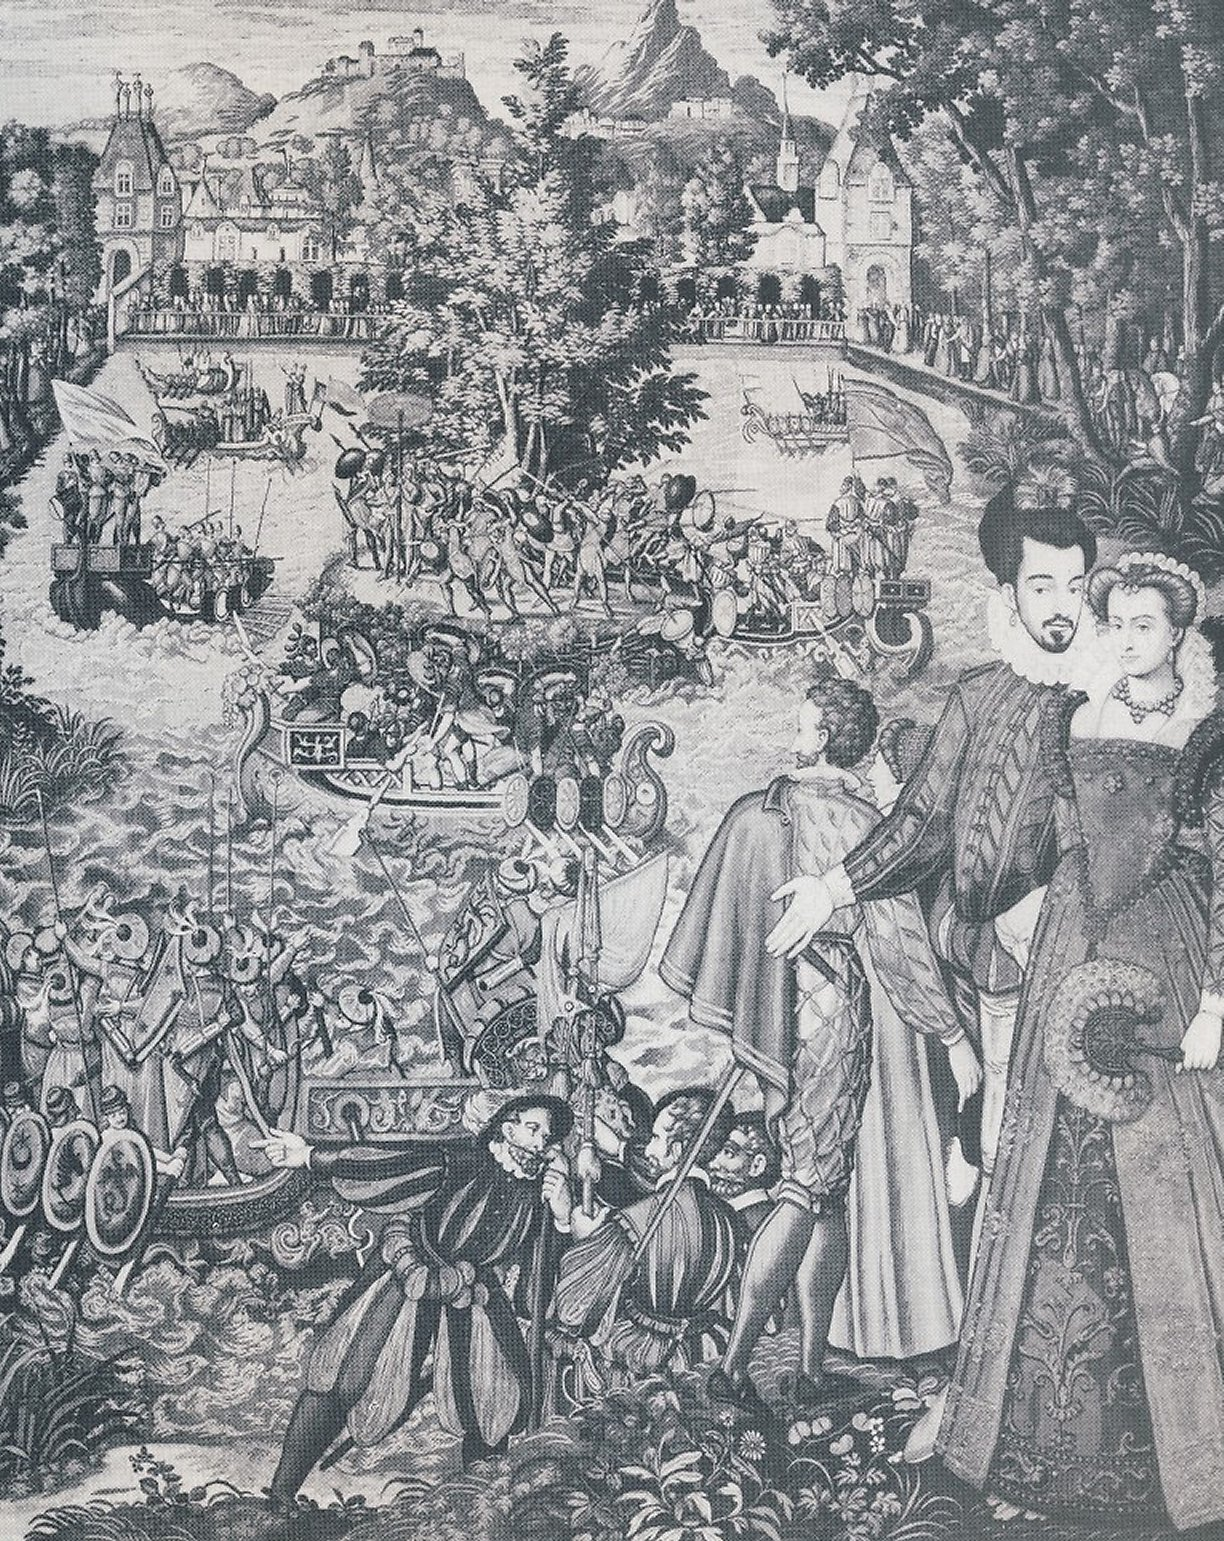 1564 - Valois tapestry, entertainments at Fontainebleau - Tapestry depicting one of Catherine de' Medici's